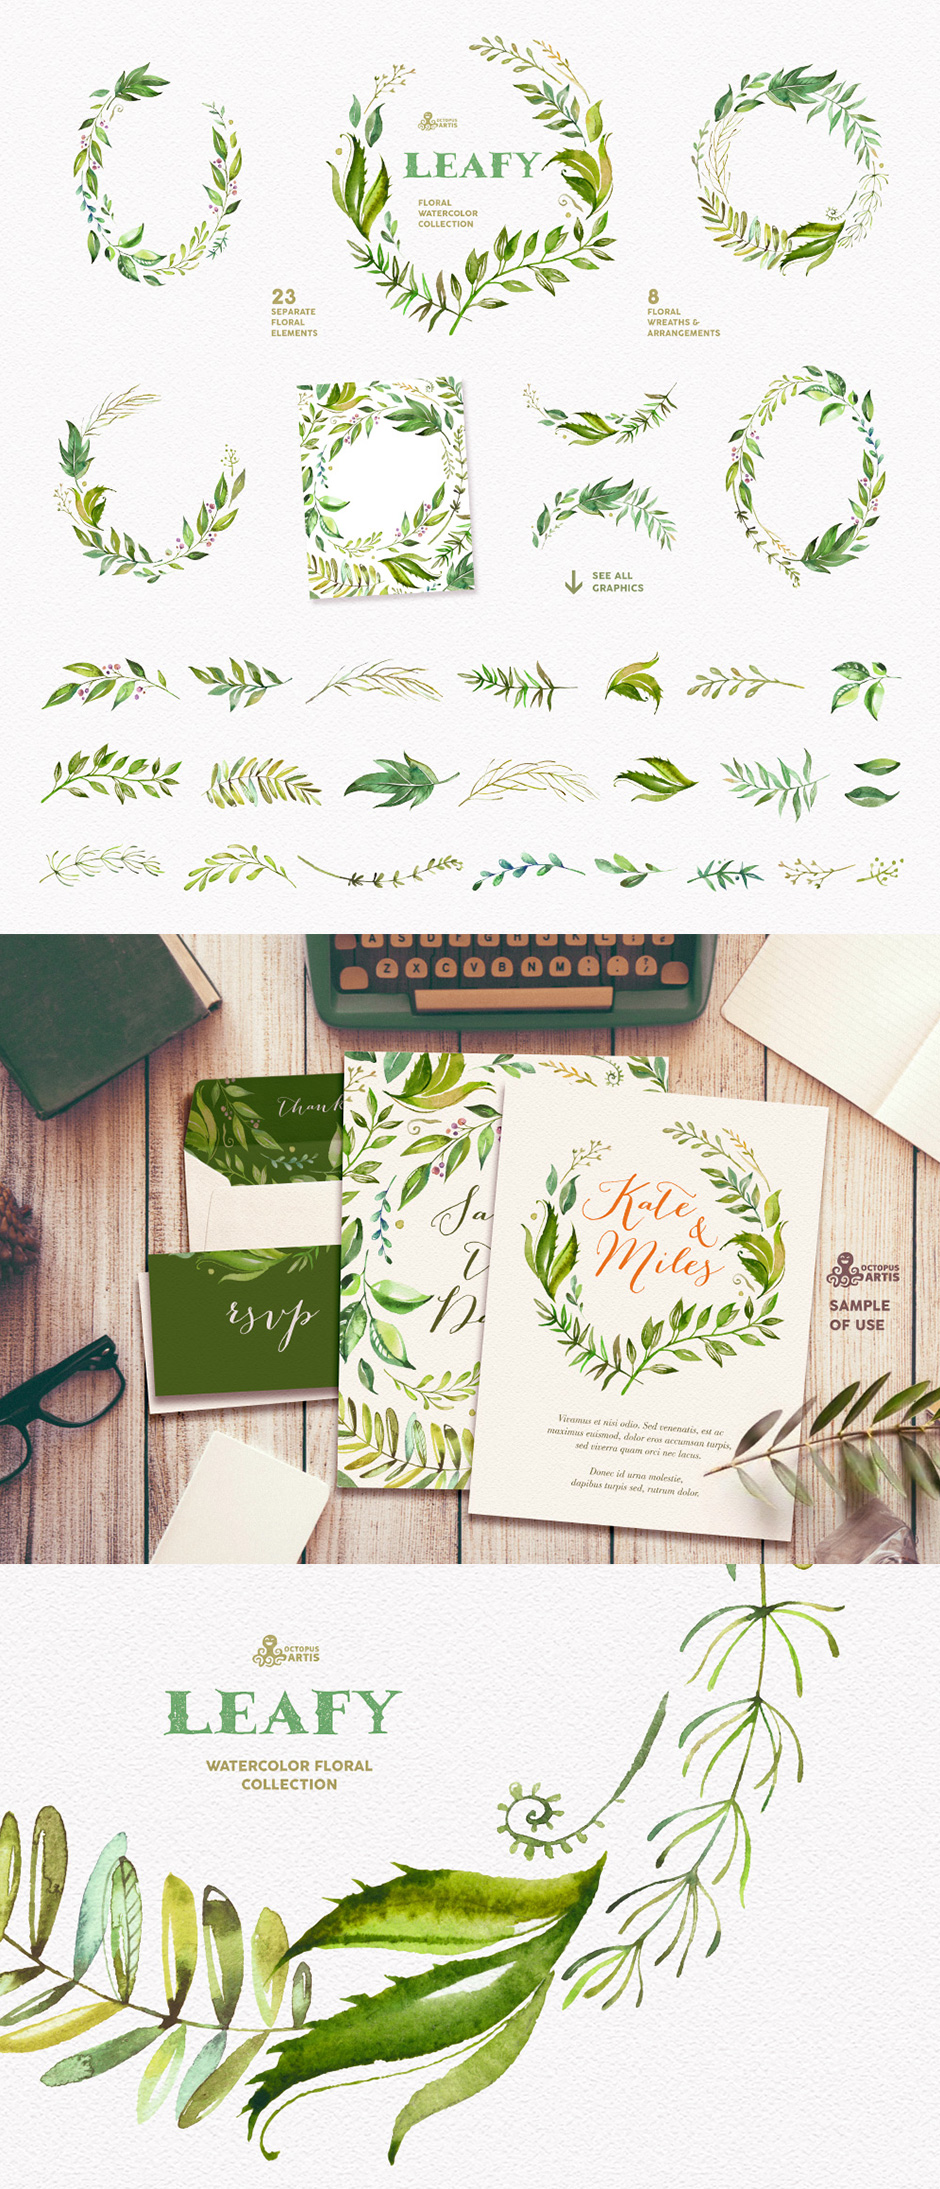 Leafy - Watercolor Floral Collection